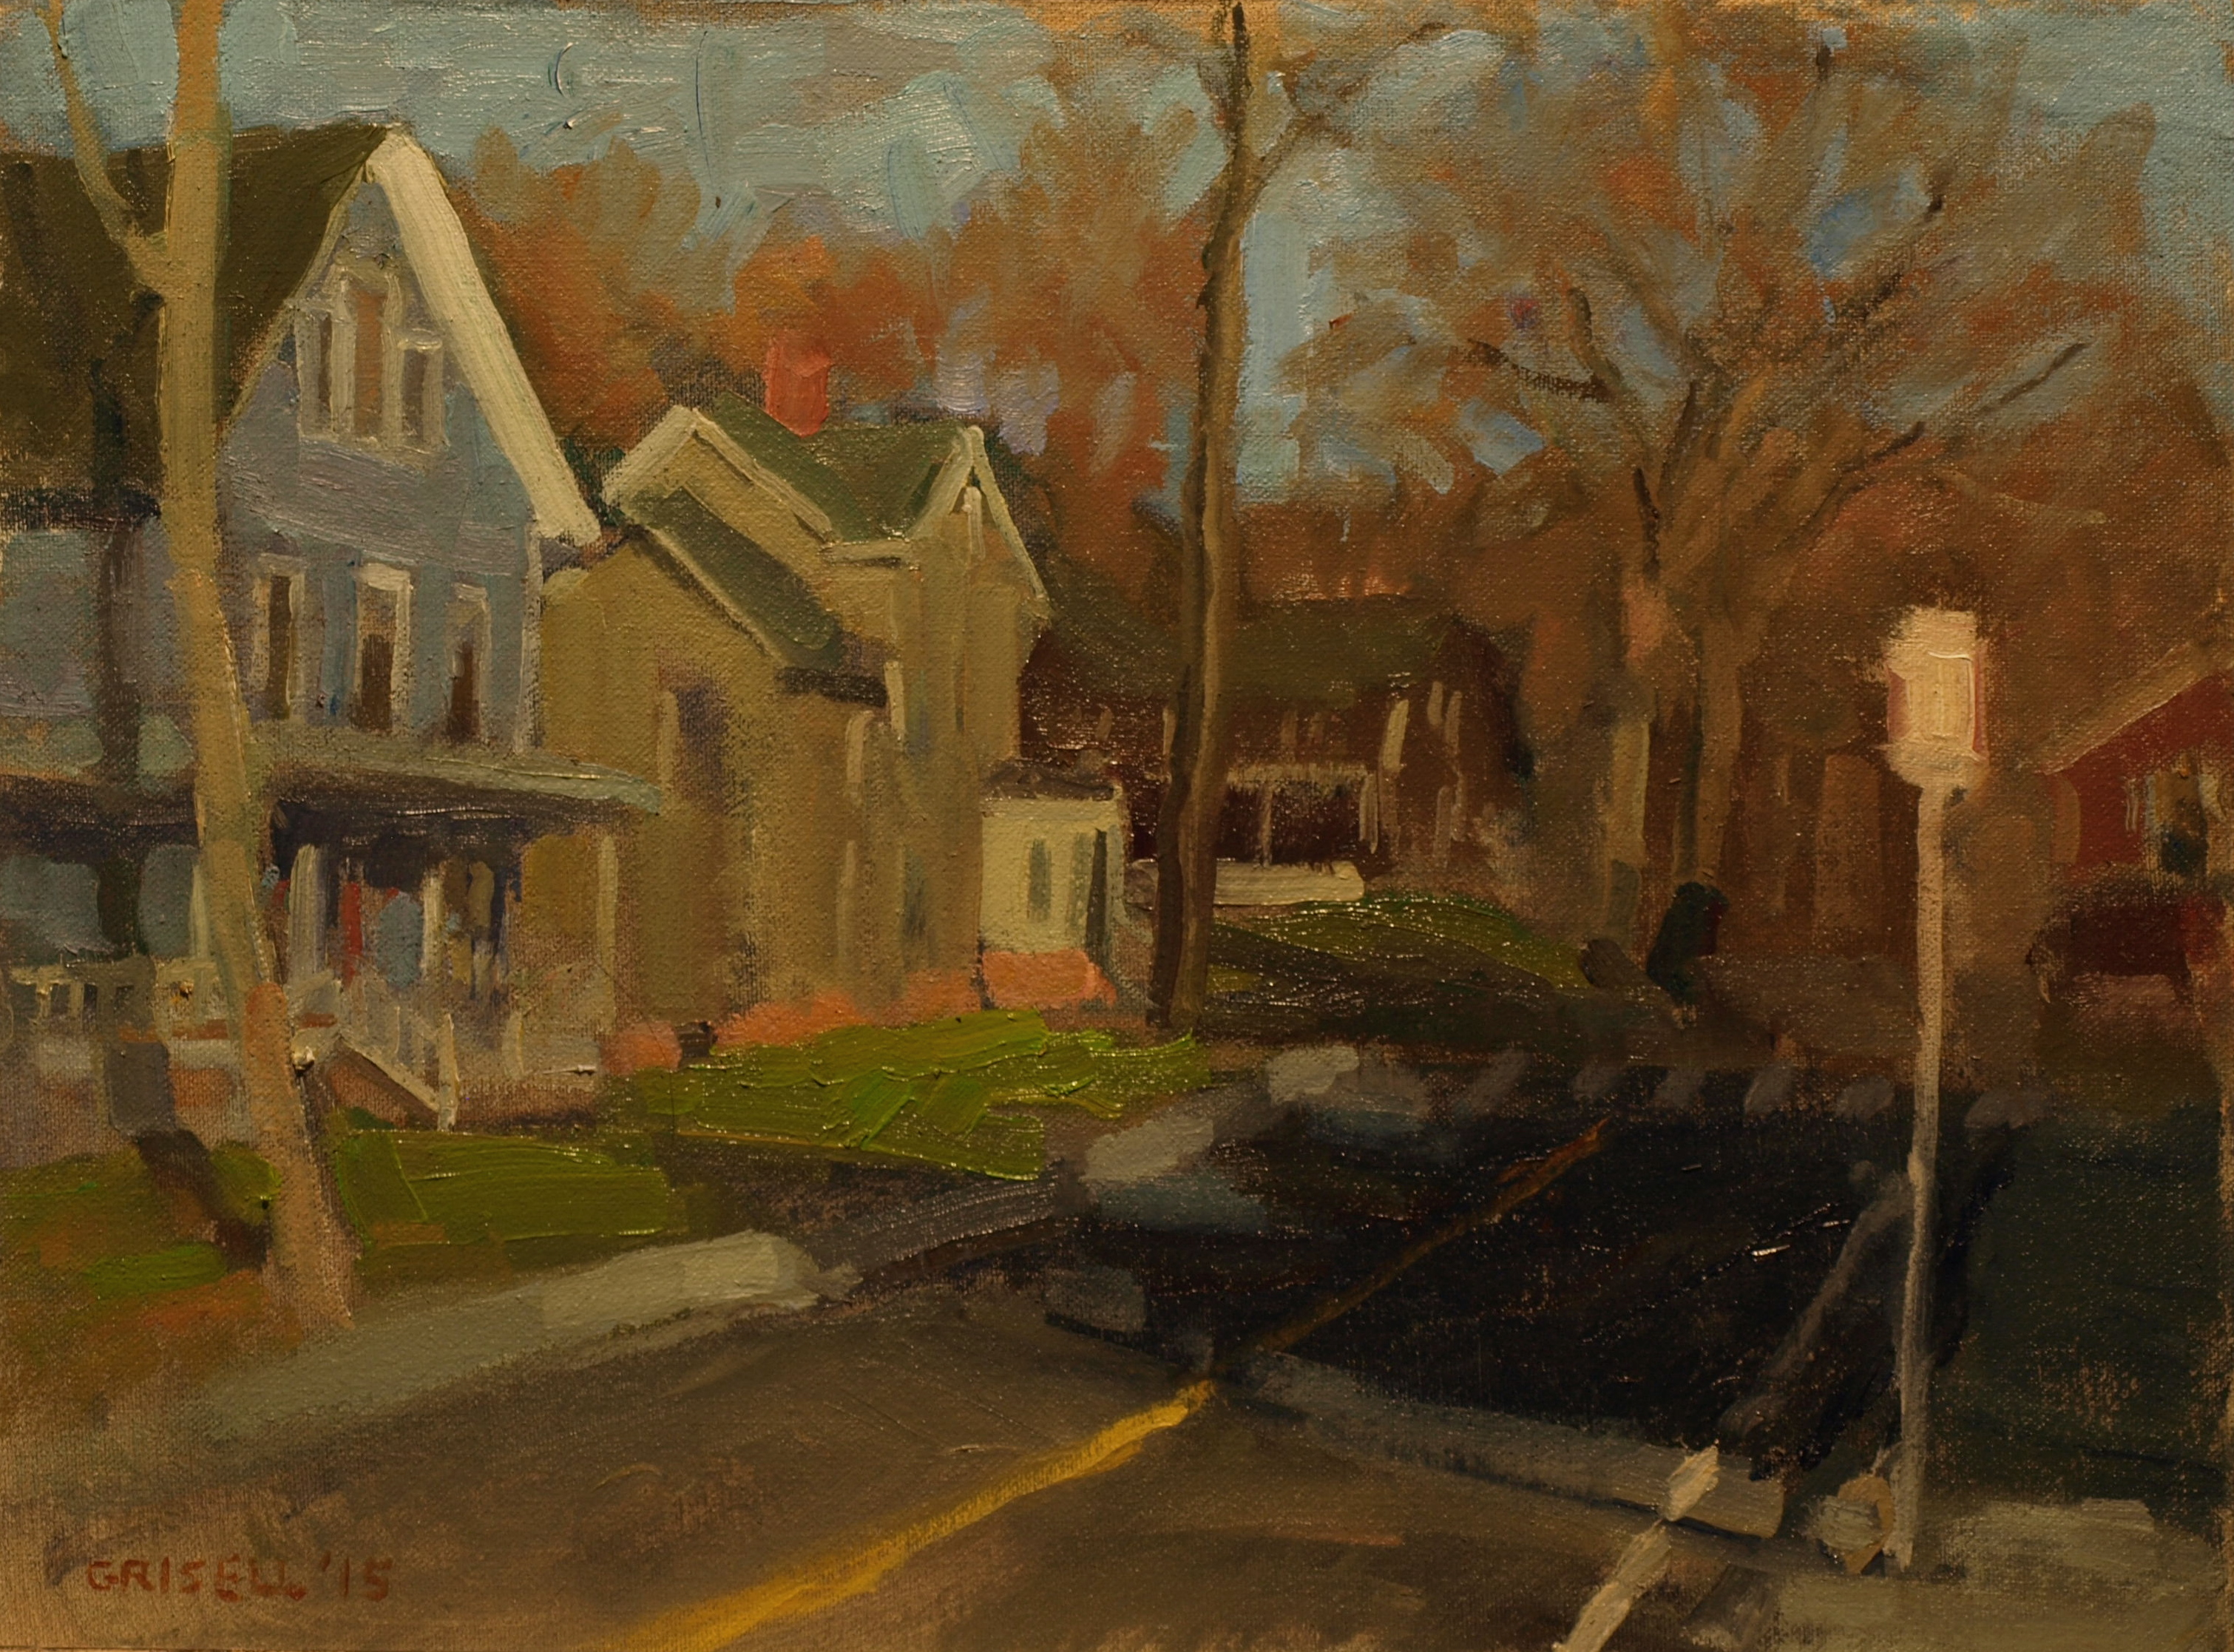 Late Autumn in Town, Oil on Canvas on Panel, 12 x 16 Inches, by Susan Grisell, $300